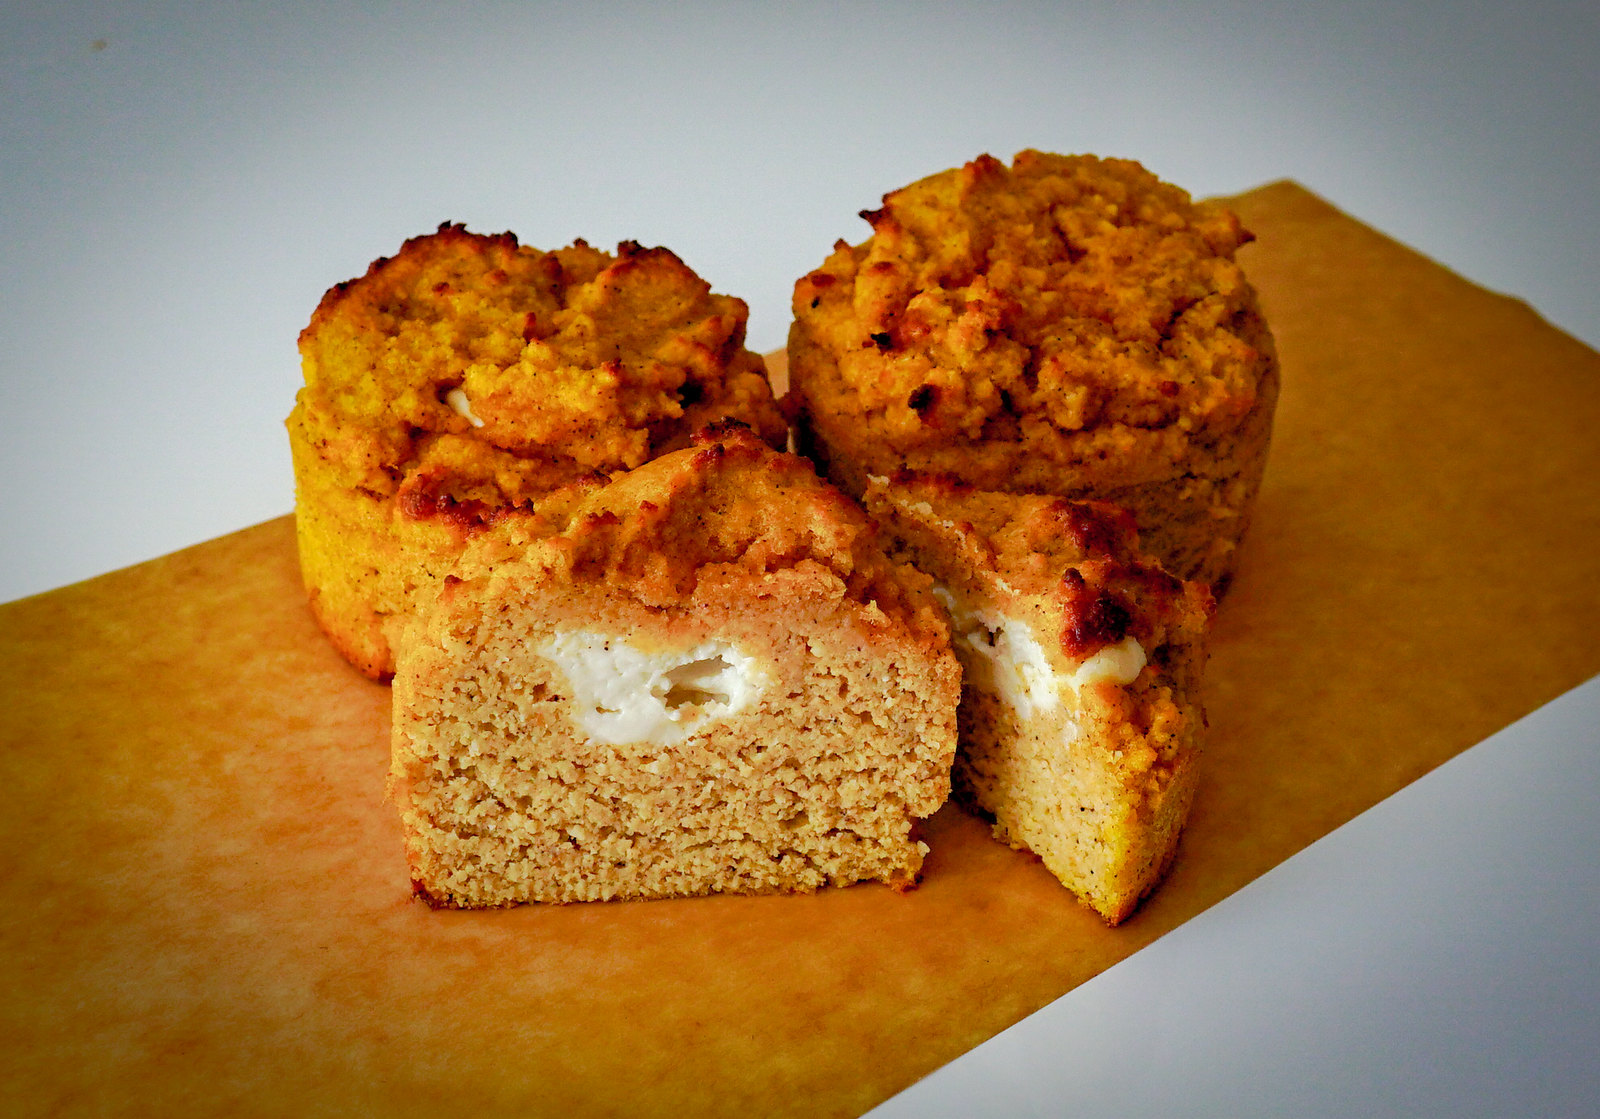 2019.02.08 Low Carbohydrate, Healthy Fat Pumpkin Muffins with Cream Cheese Filling, Washington, DC USA 09749